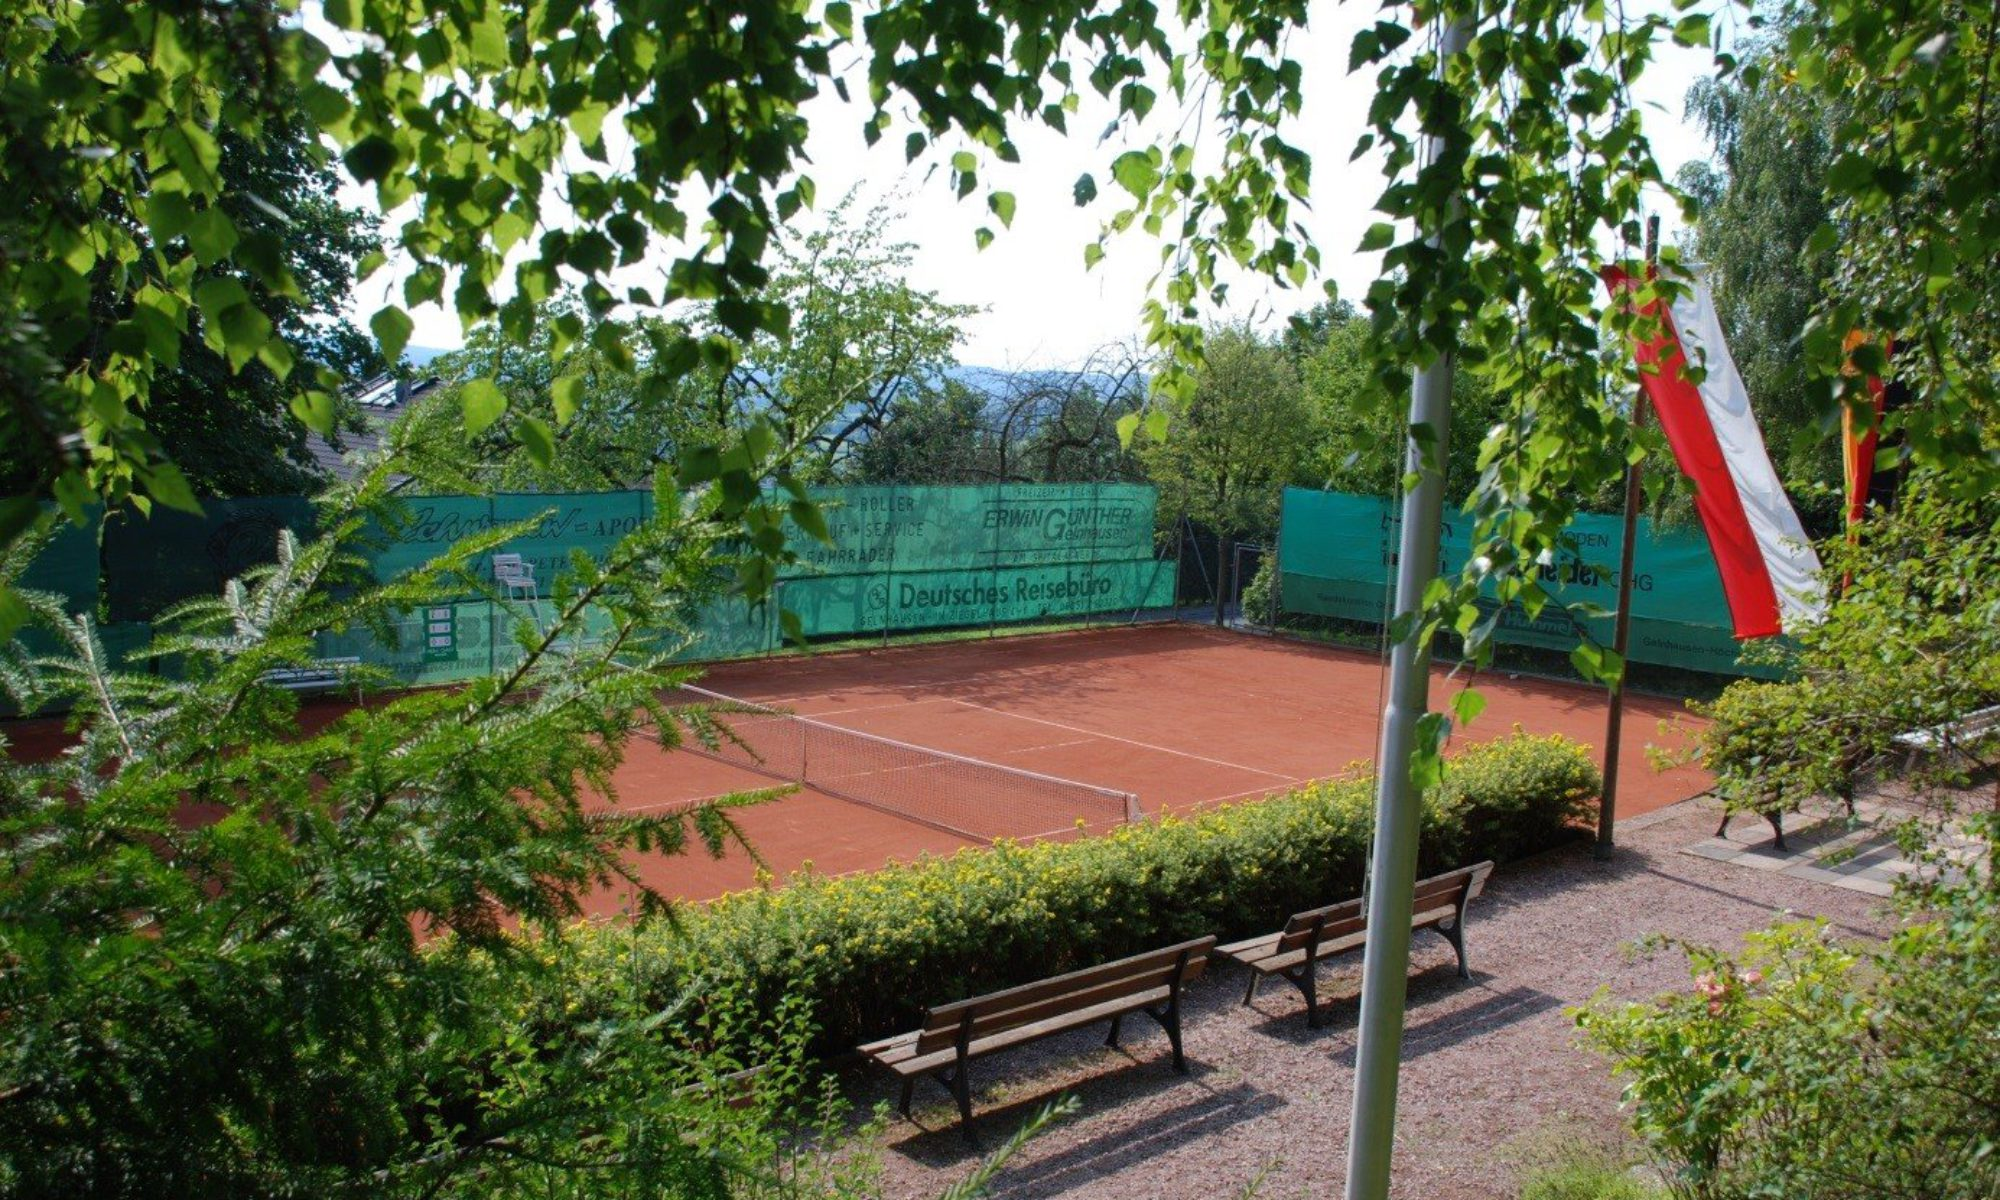 Tennis Club Blau Weiß Gelnhausen